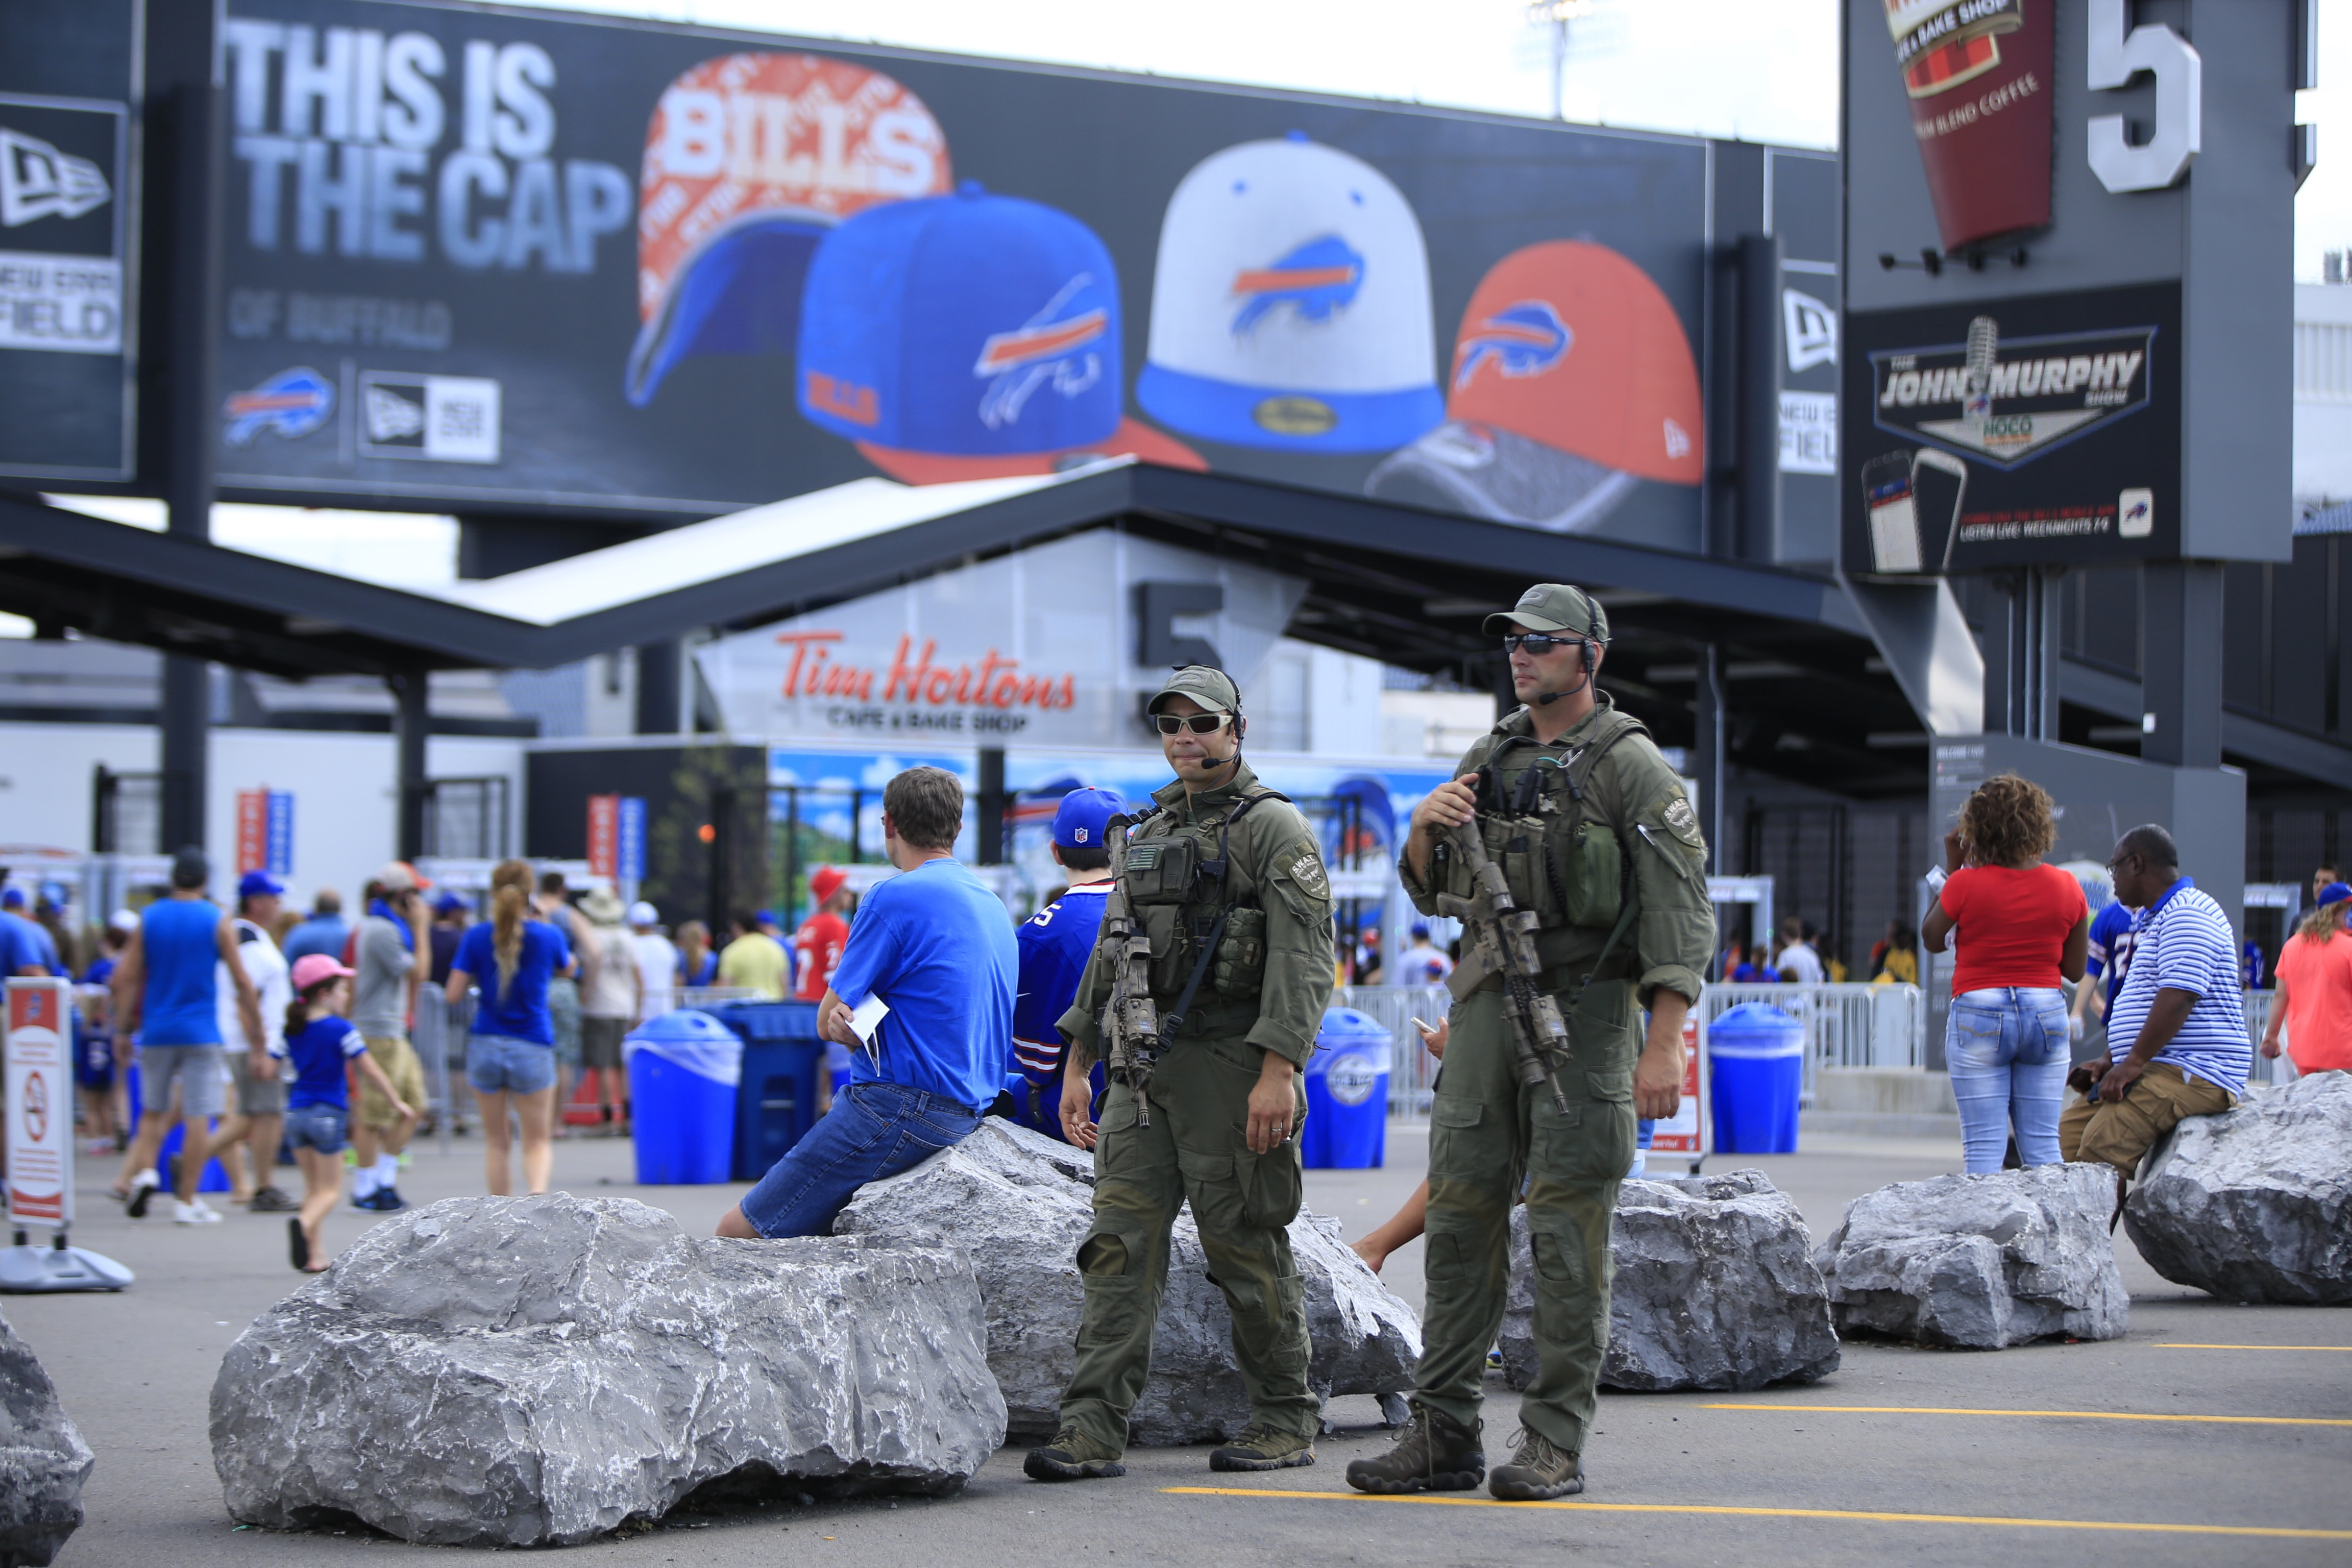 Erie County SWAT team members Ben Pisa and Matt Noecker walk the outside perimiter of New Era Field prior to the Buffalo Bills and New York Giants game on Saturday, Aug. 20, 2016. (Harry Scull Jr./Buffalo News)